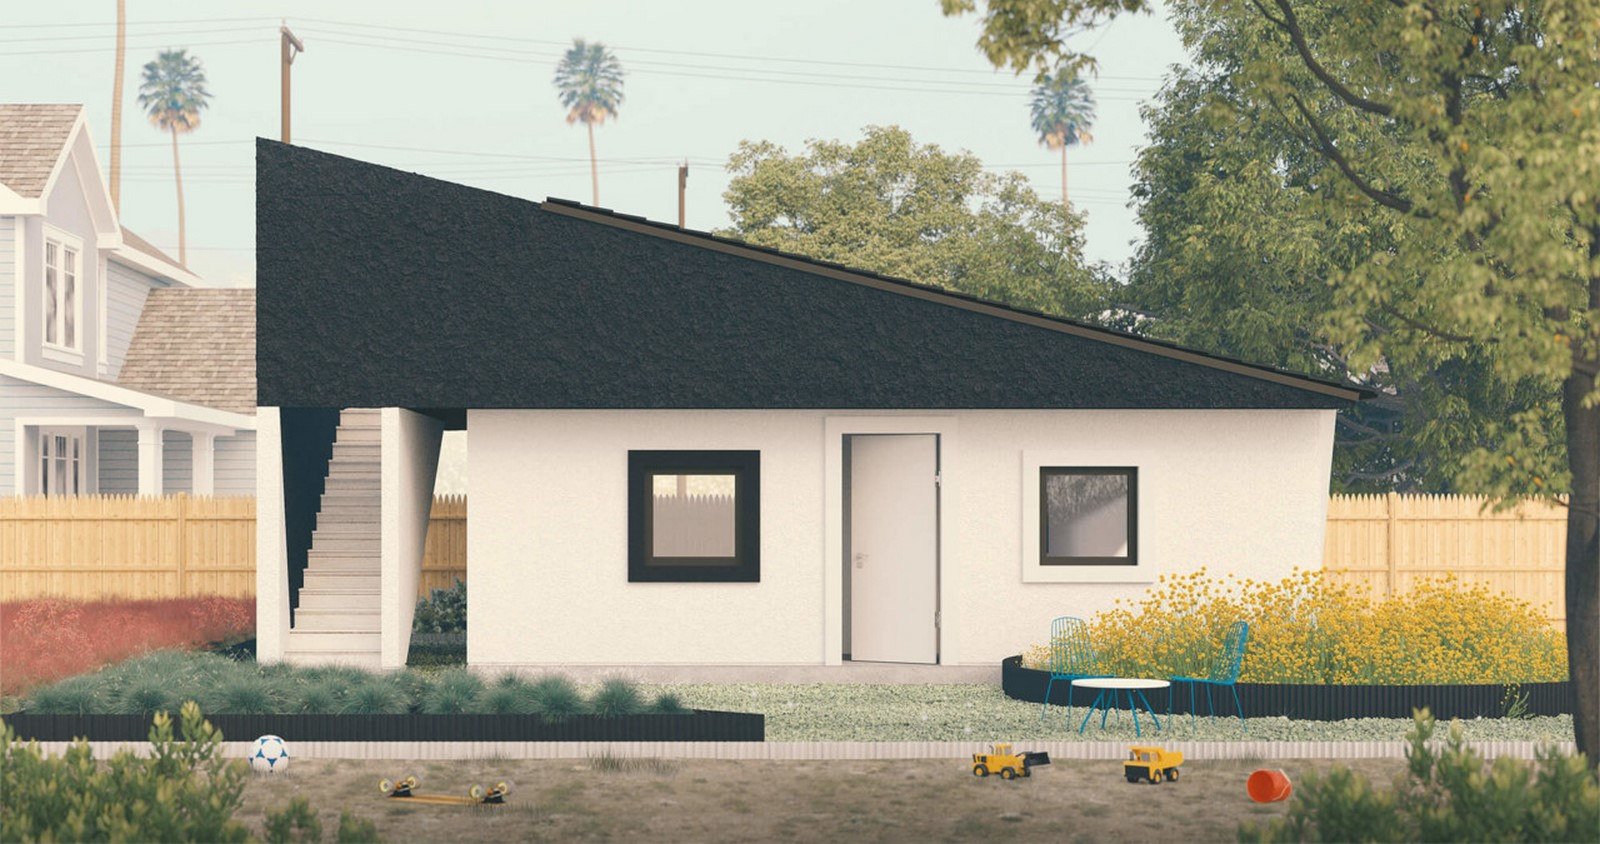 """Prefabricated """"Pebble House"""" For The Los Angeles Accessory Dwelling Units Scheme proposed by SO-IL - Sheet6"""